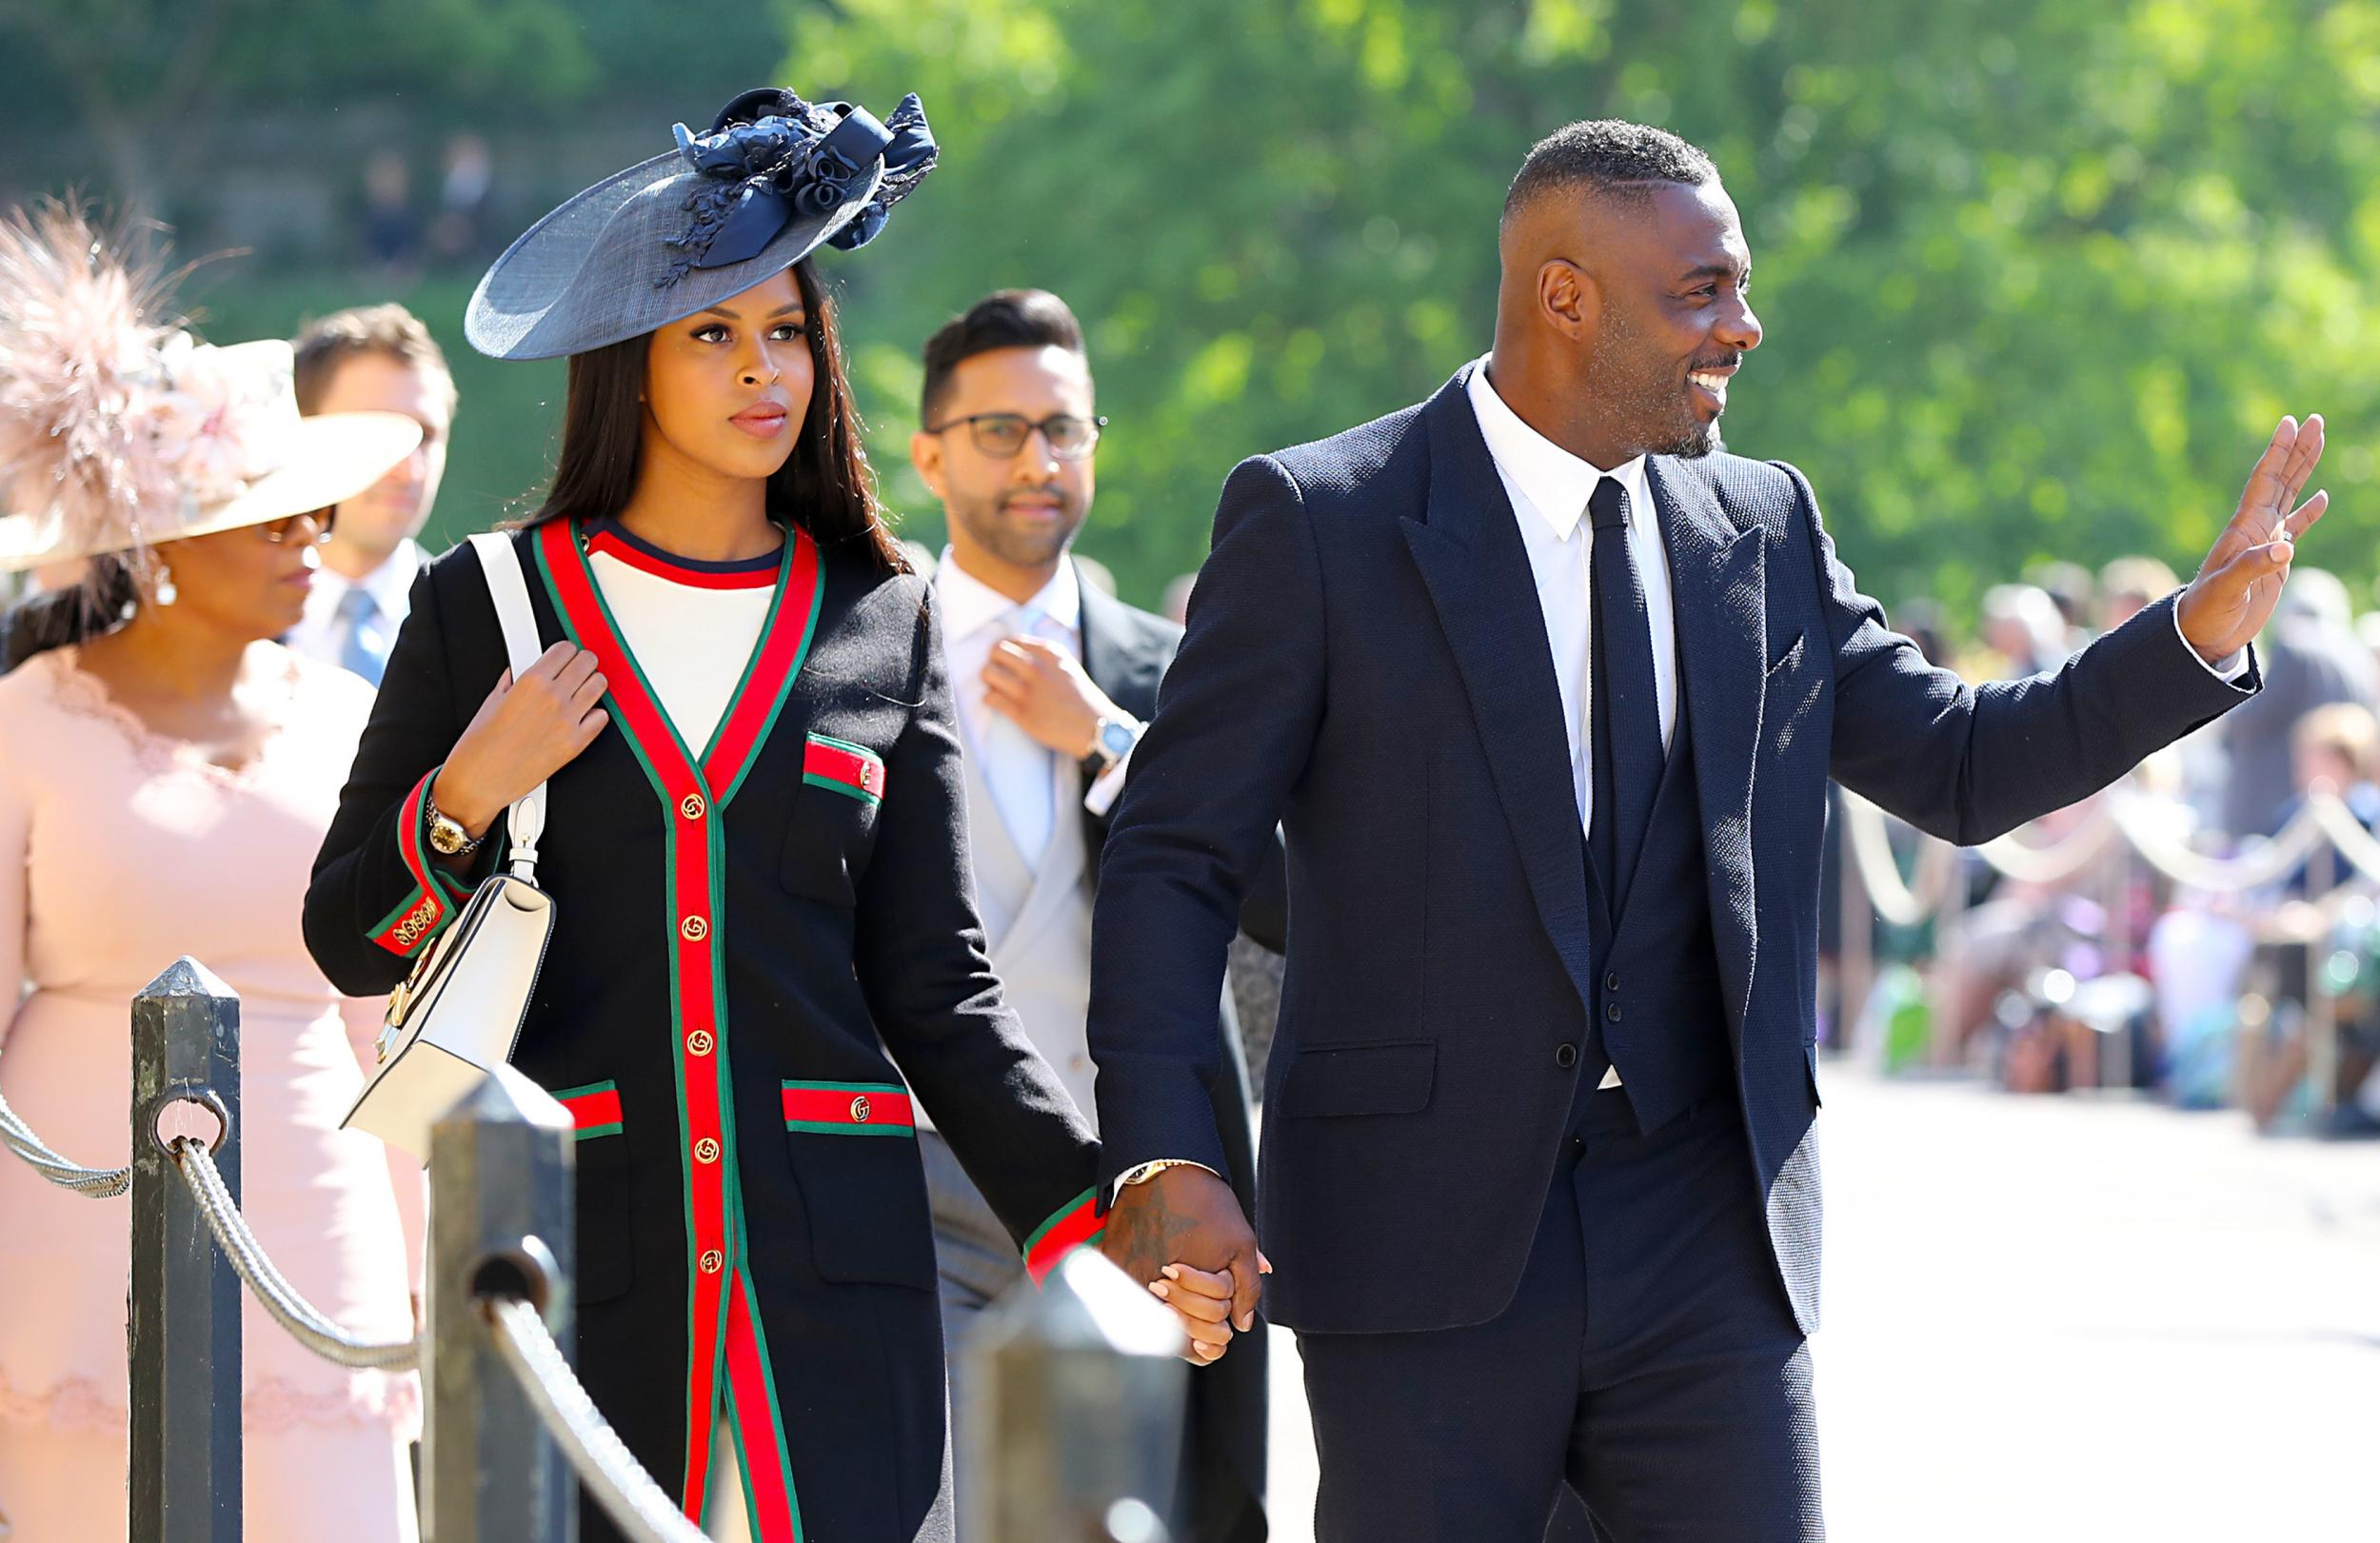 c60c7a736c03a Royal wedding guests  Everyone who attended Meghan Markle and Prince  Harry s ceremony